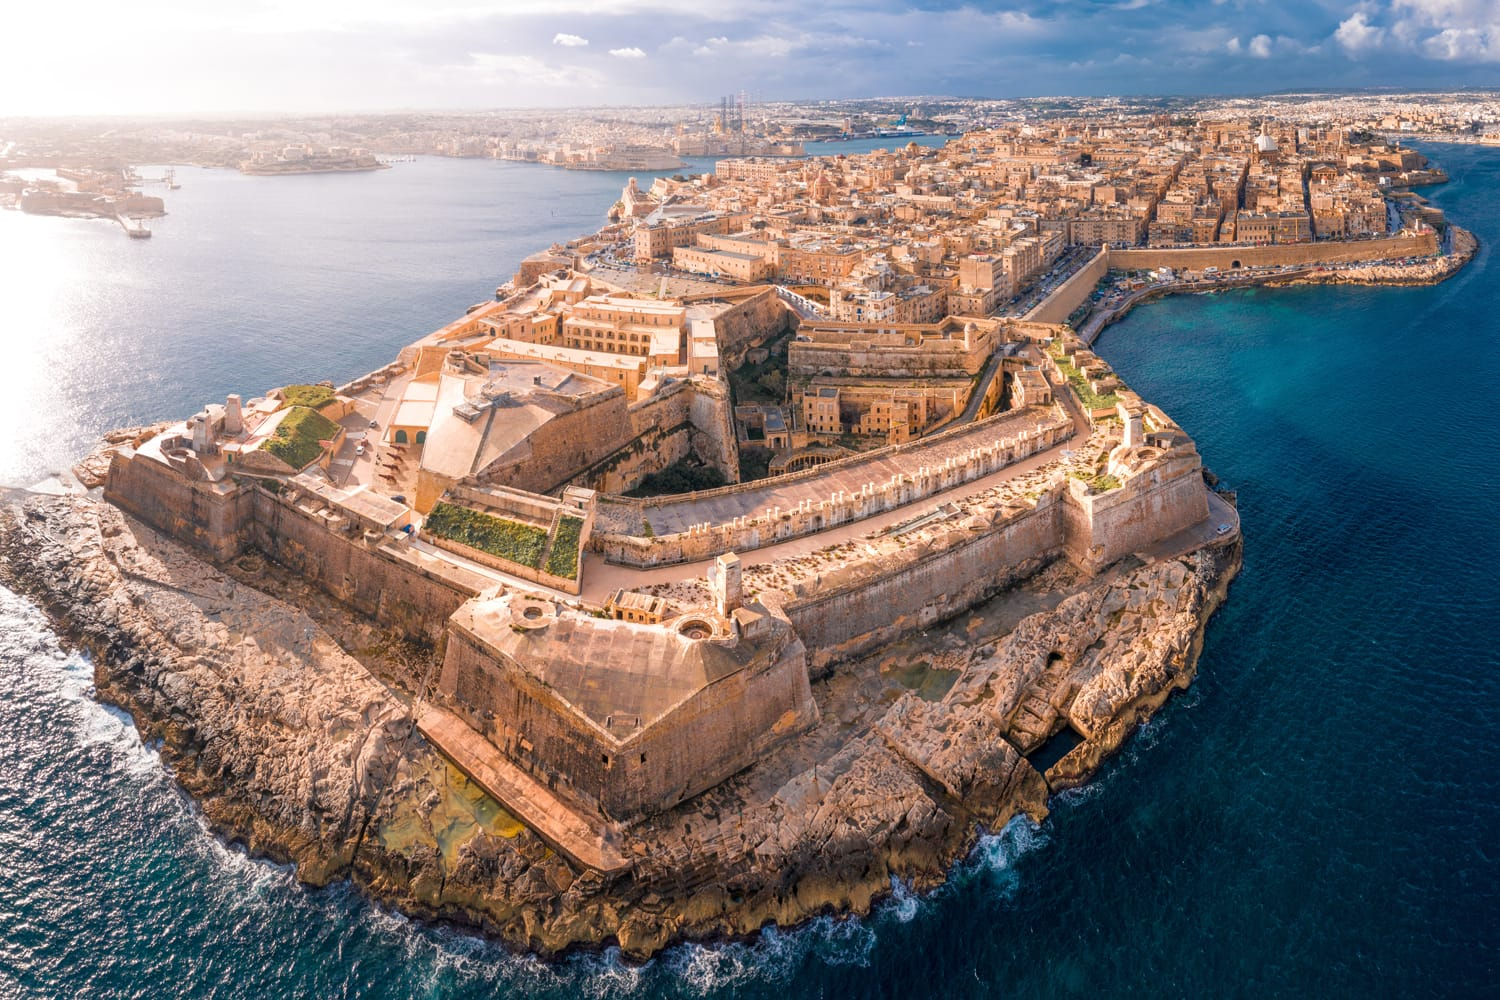 Aerial view of Fort St. Elmo in Valletta, Malta